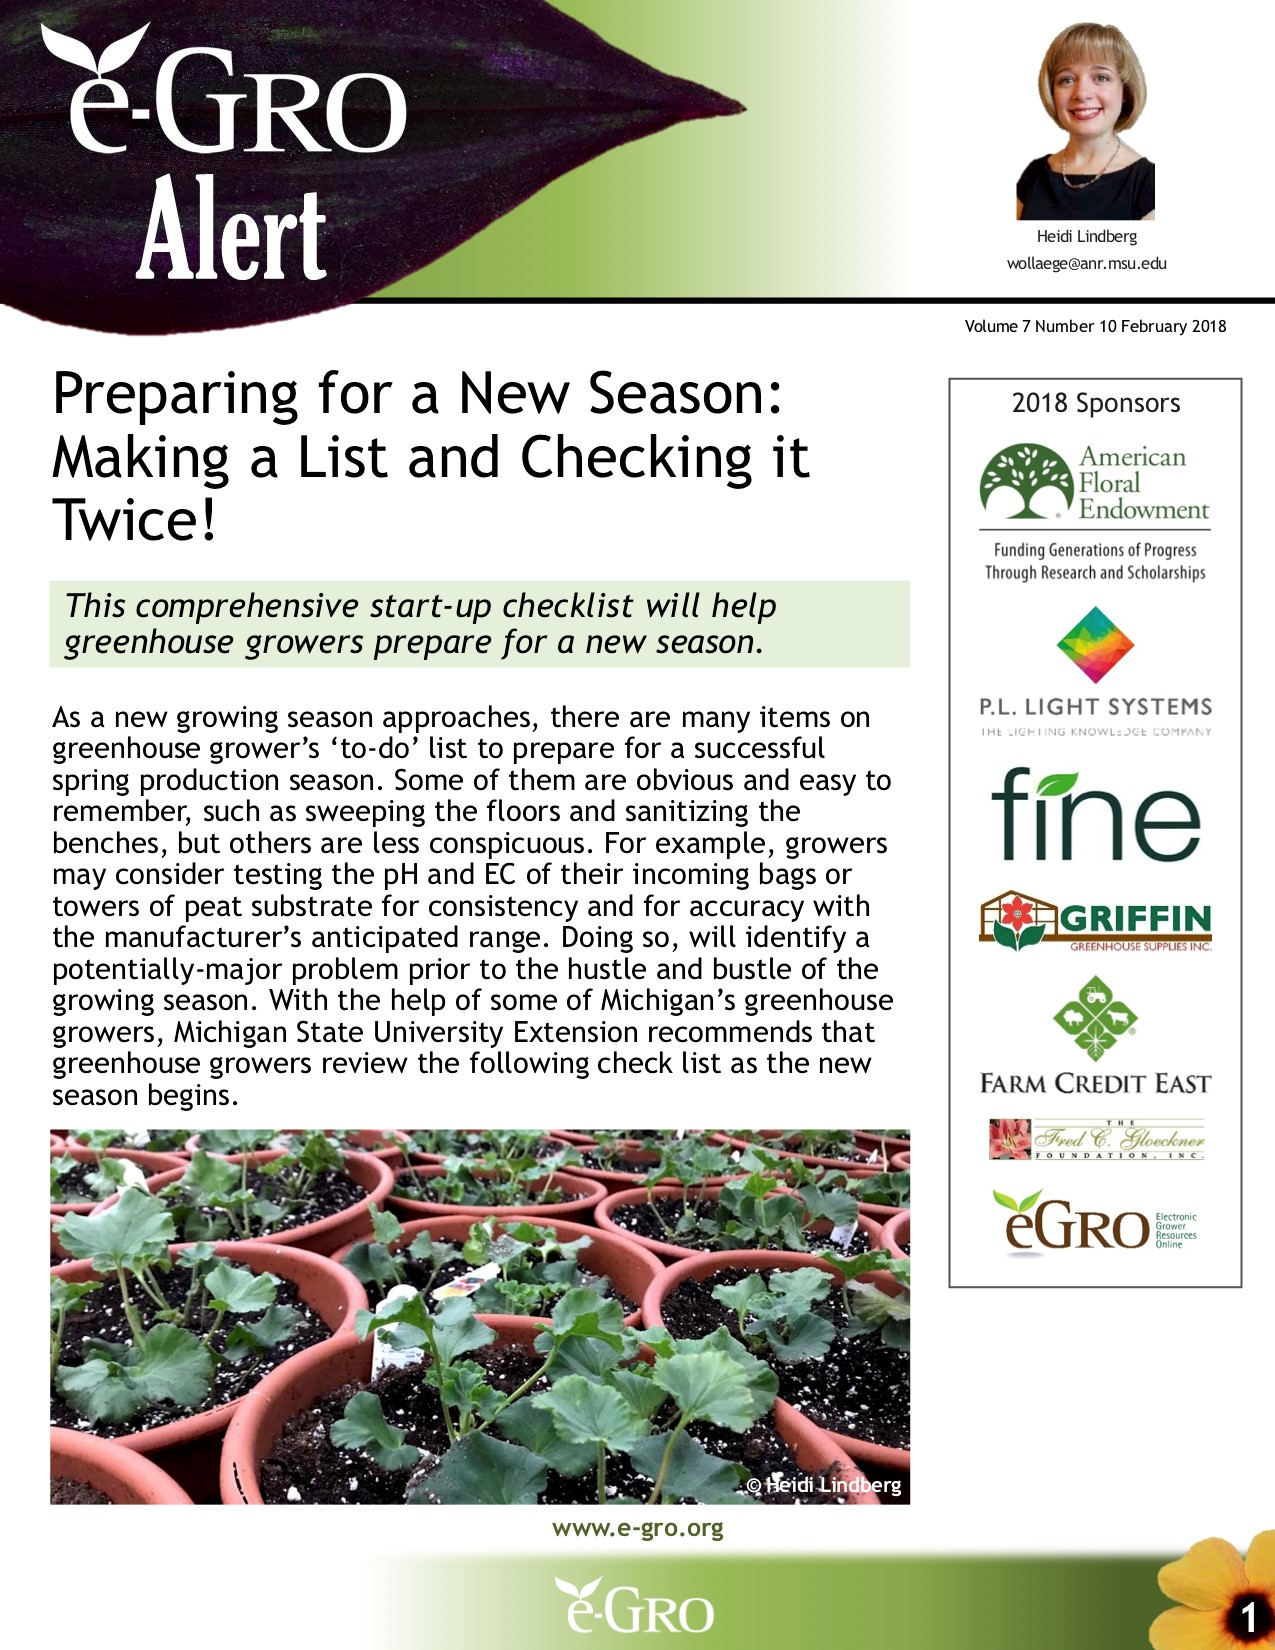 An example of MSU generated e-GRO Alerts.